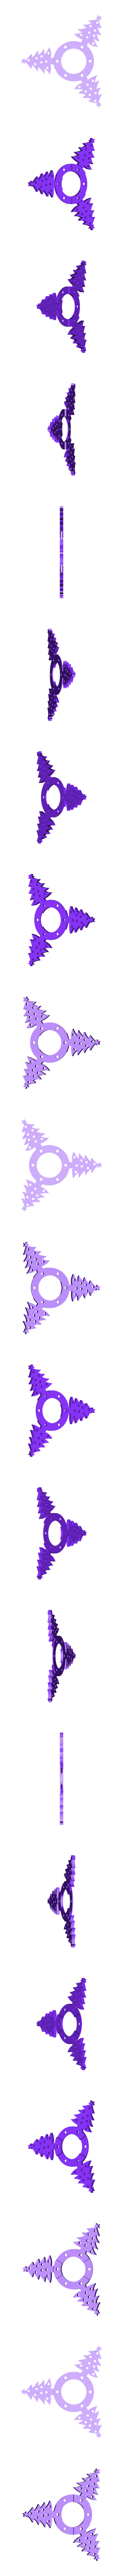 Xmas_Spinner_-_Tannenbaum.stl Download free STL file Christmas Spinners • Model to 3D print, Zippityboomba